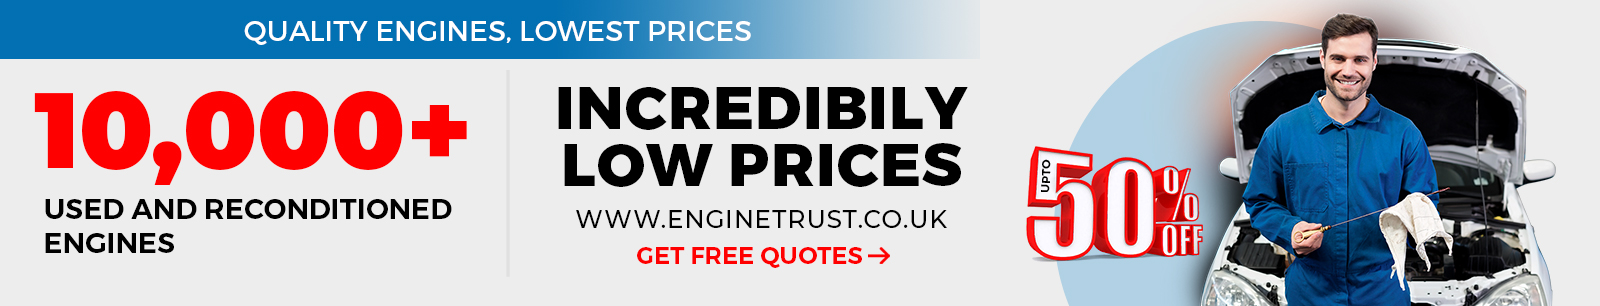 Offers upto 50% on used & reconditioned engines